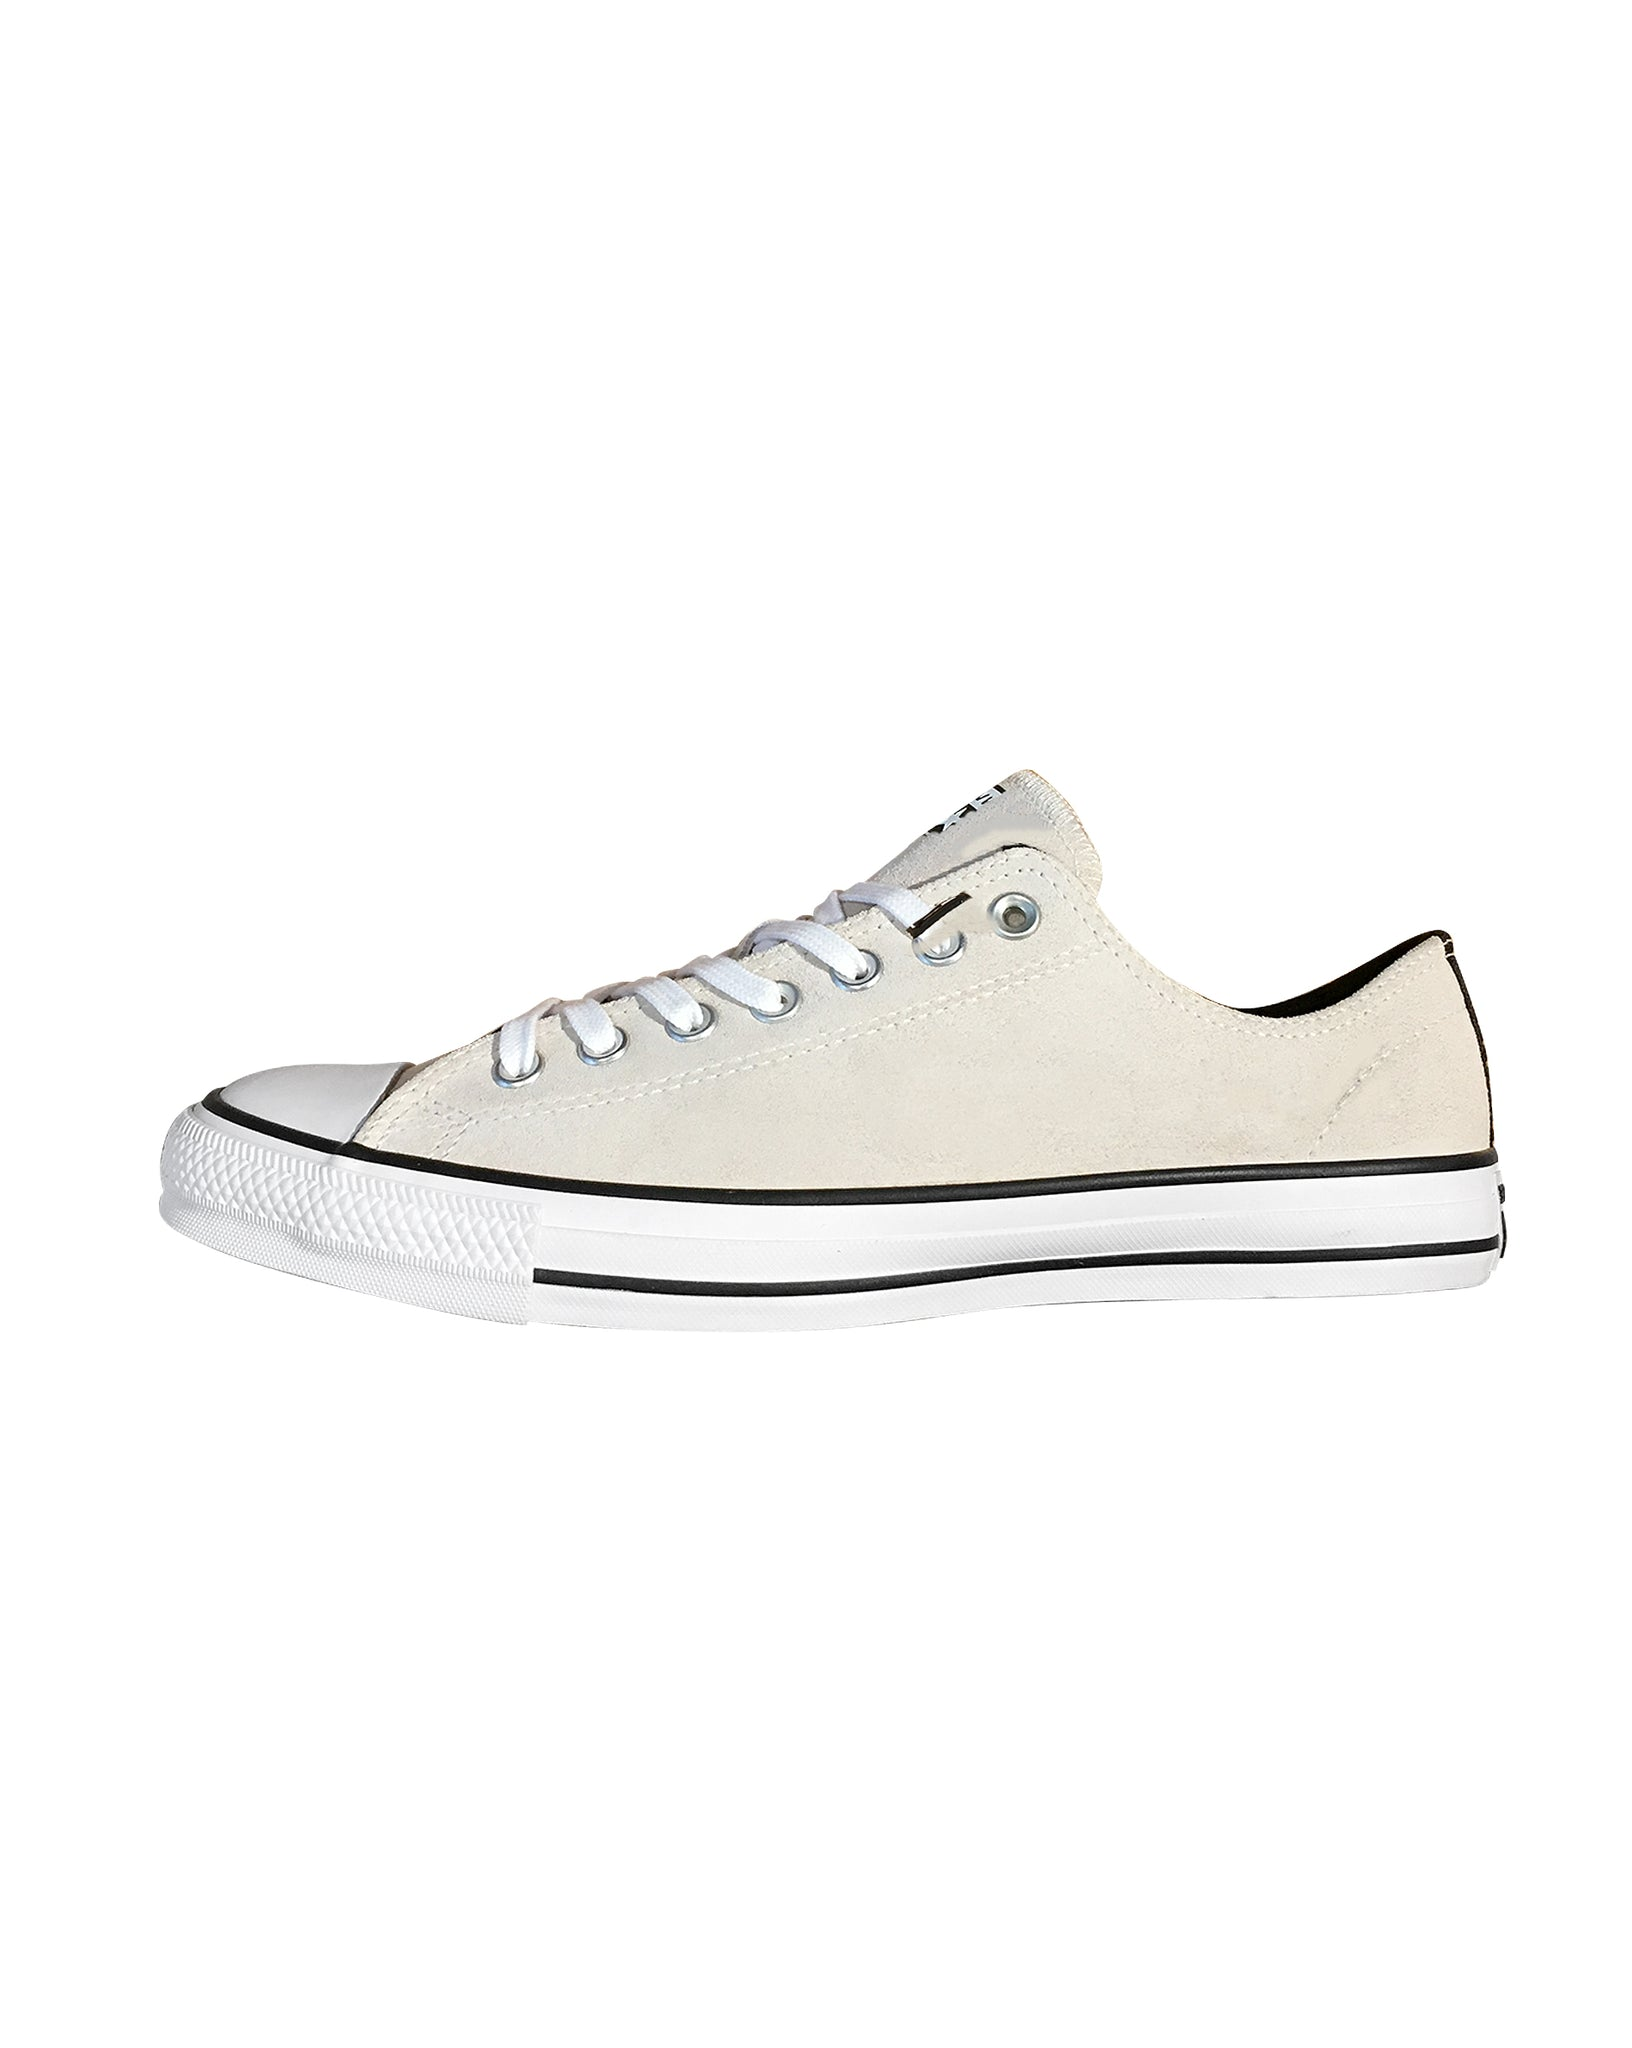 Tênis Converse Cons Chuck Taylor All Star Branco